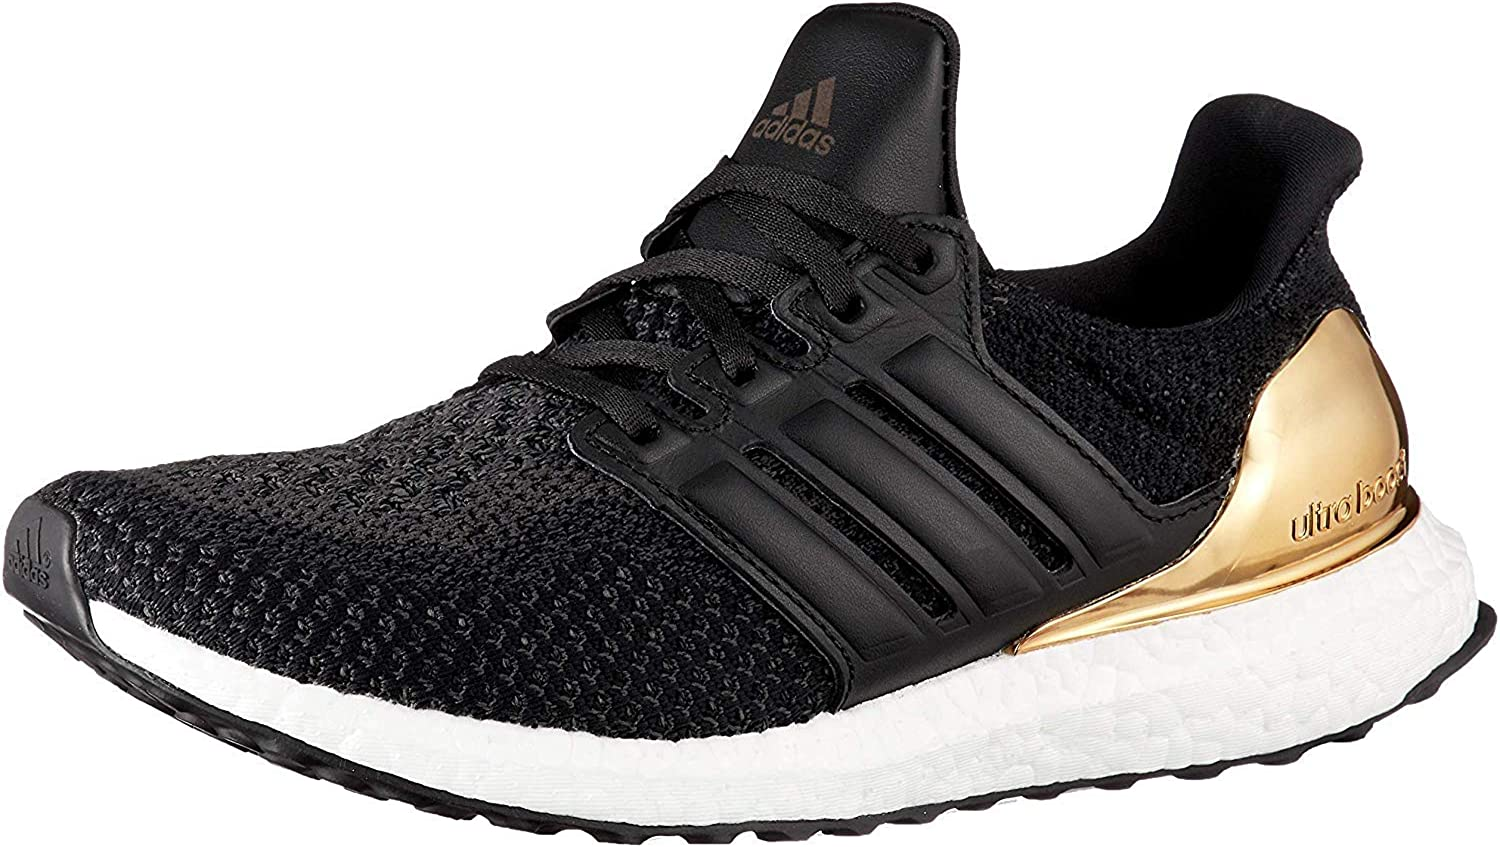 2019 Adidas Ultra Boost 2.0 Navy BlueWhite FW5230 For Sale